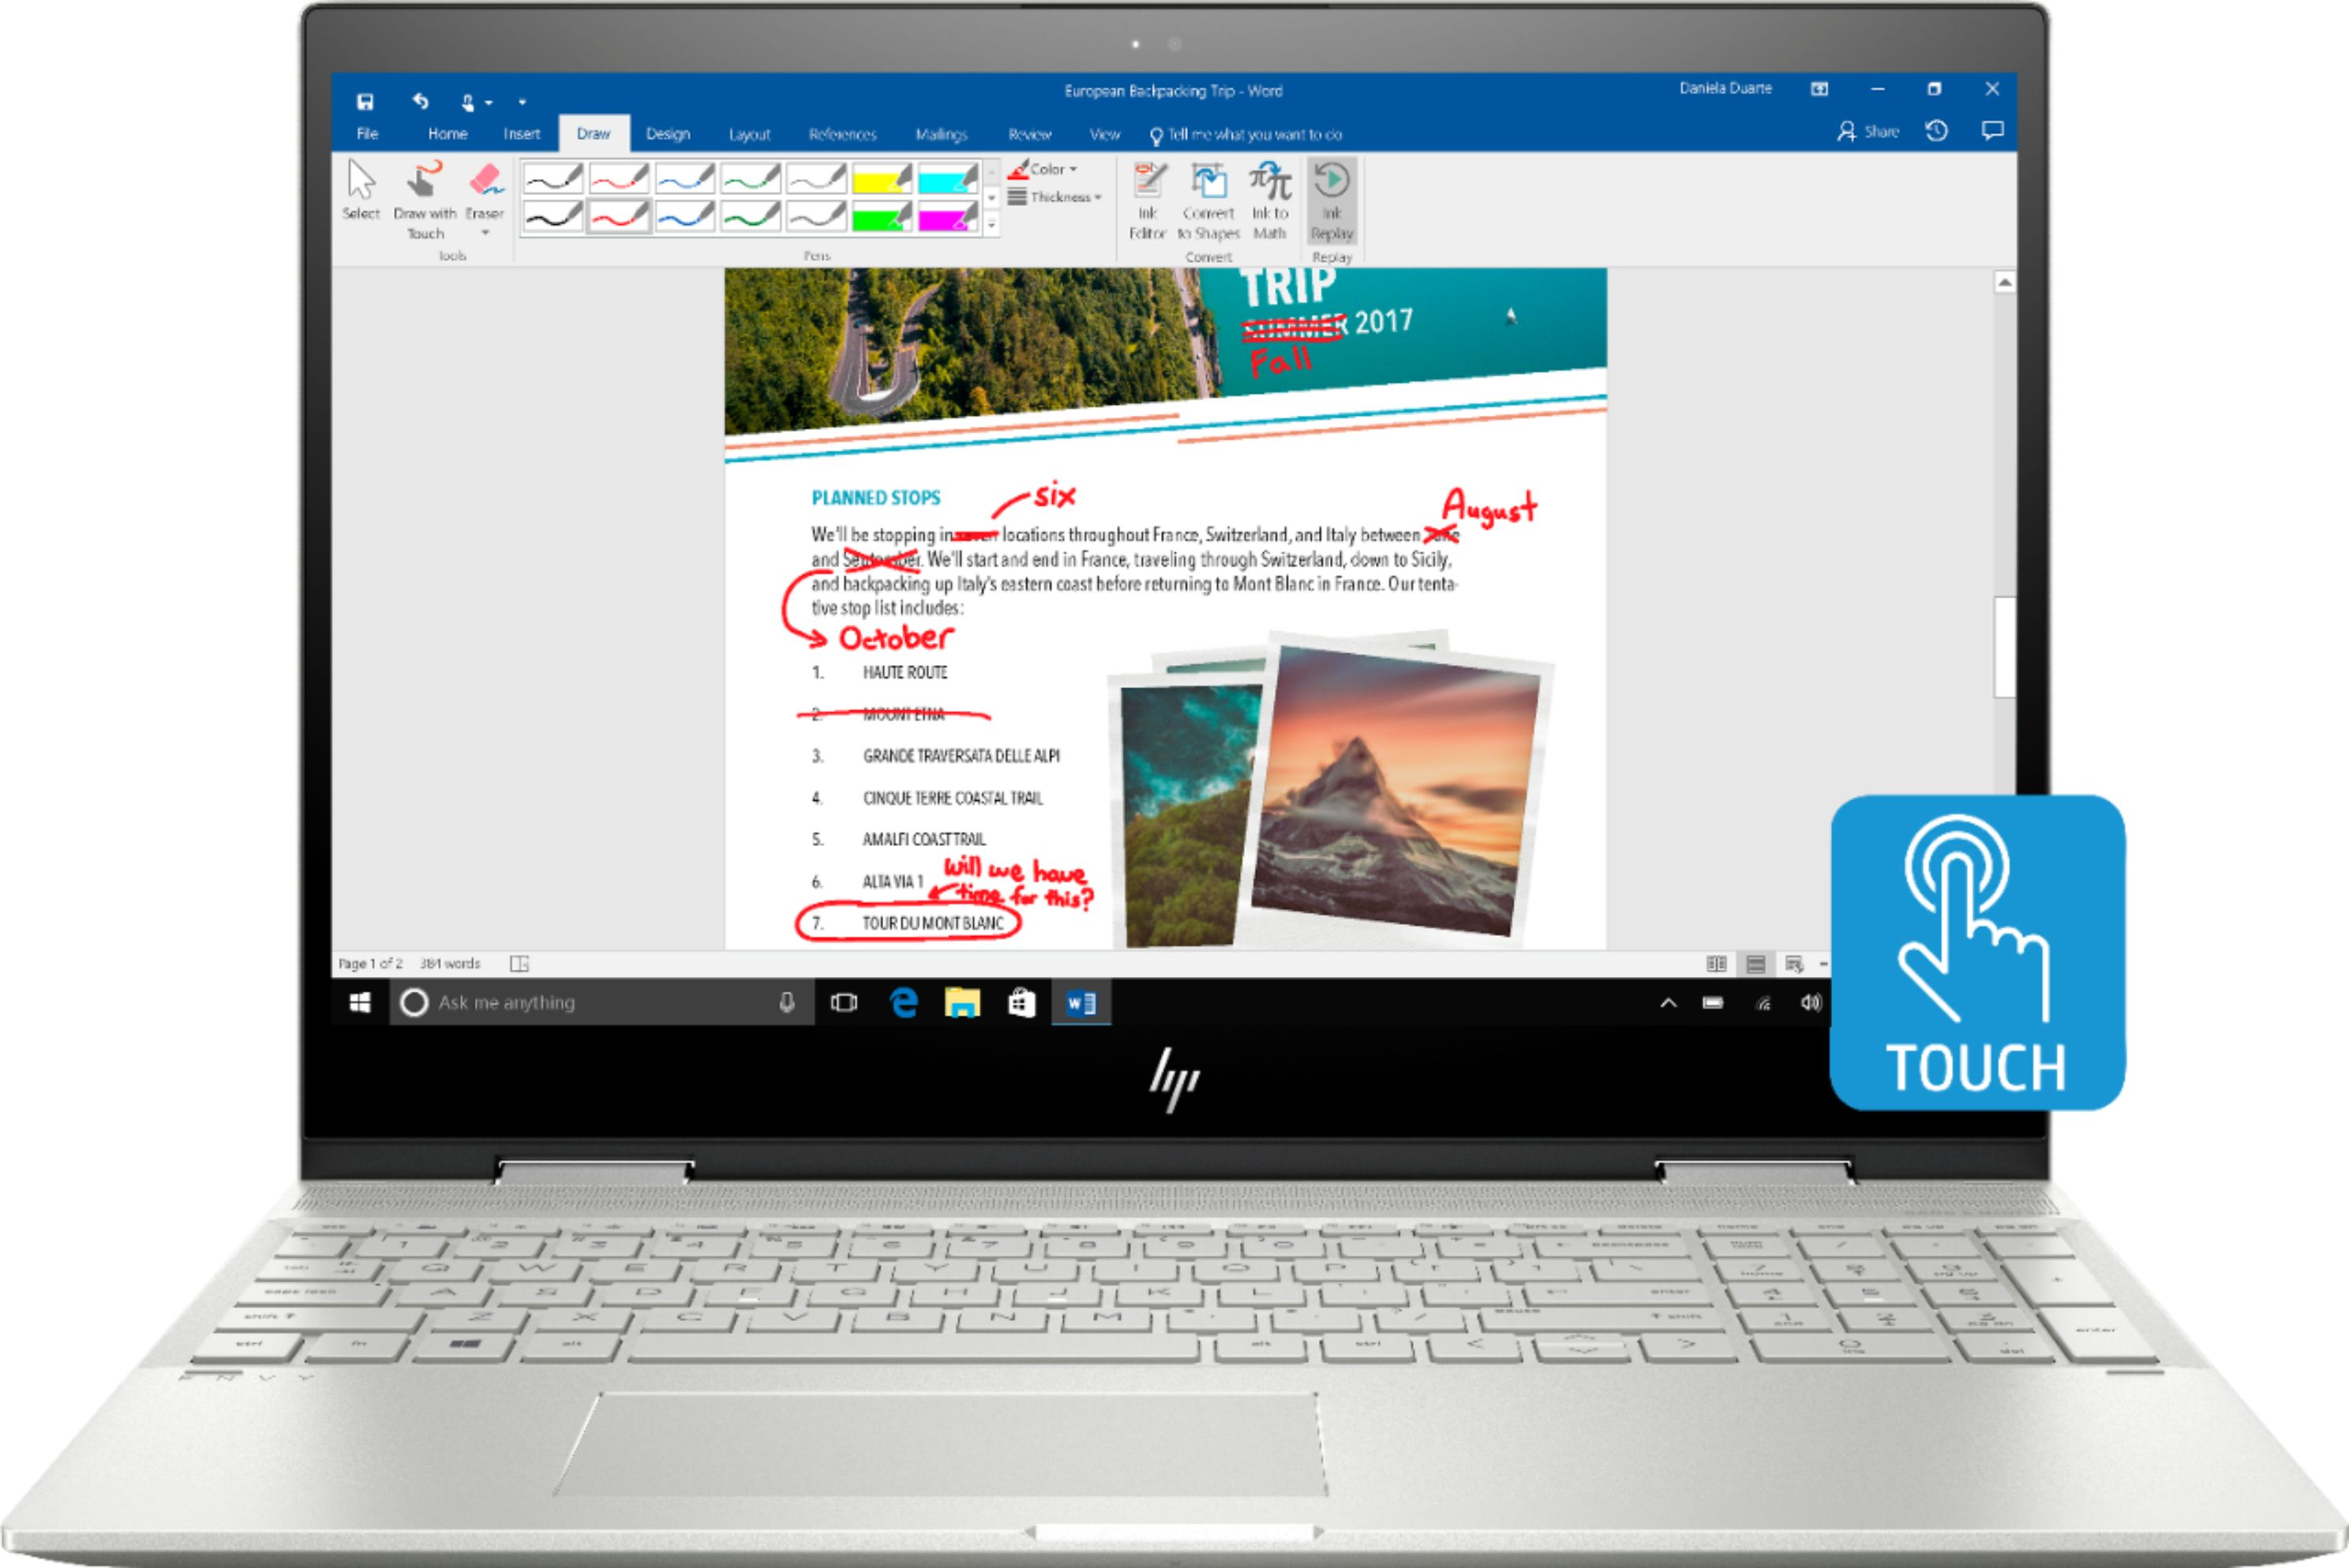 """Front Zoom. Geek Squad Certified Refurbished ENVY x360 2-in-1 15.6"""" Touch-Screen Laptop - Intel Core i7 - 12GB Memory - 256GB SSD - HP Finish In Natural Silver."""